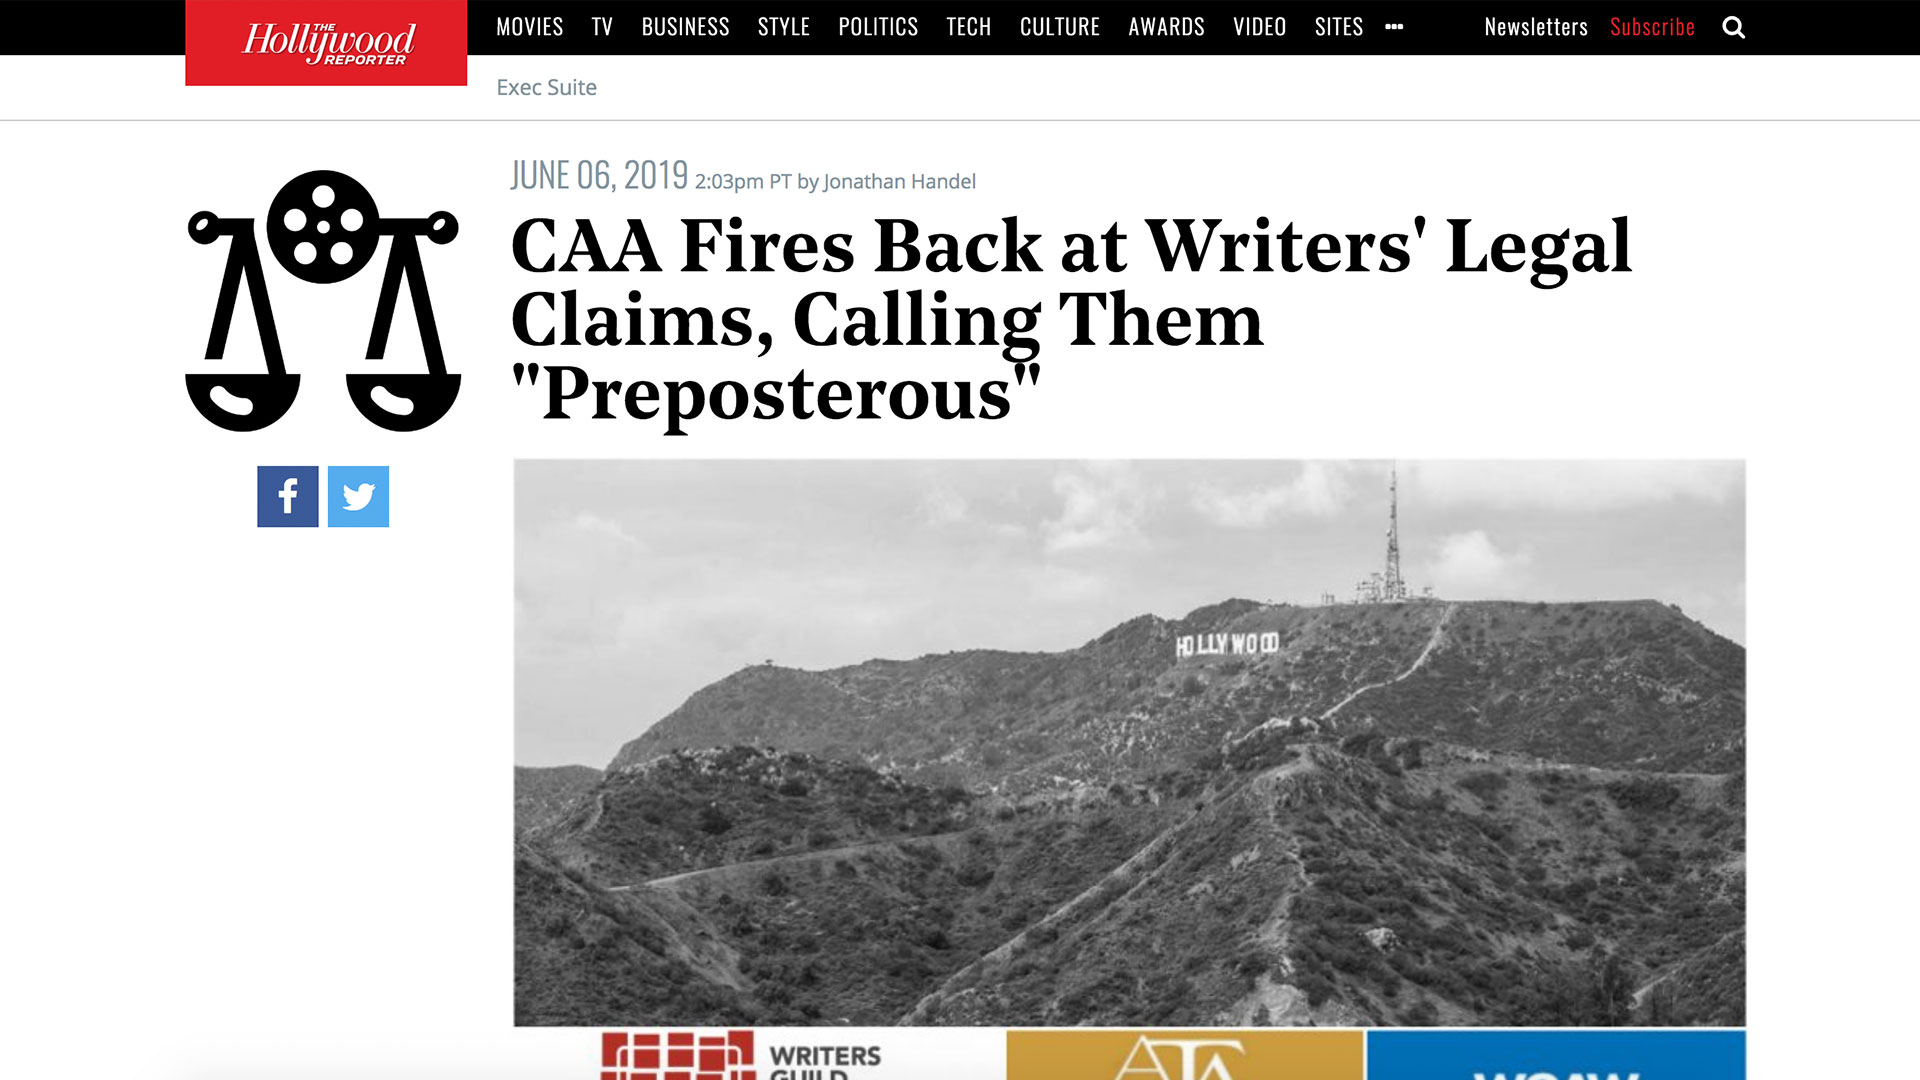 """Fairness Rocks News CAA Fires Back at Writers' Legal Claims, Calling Them """"Preposterous"""""""